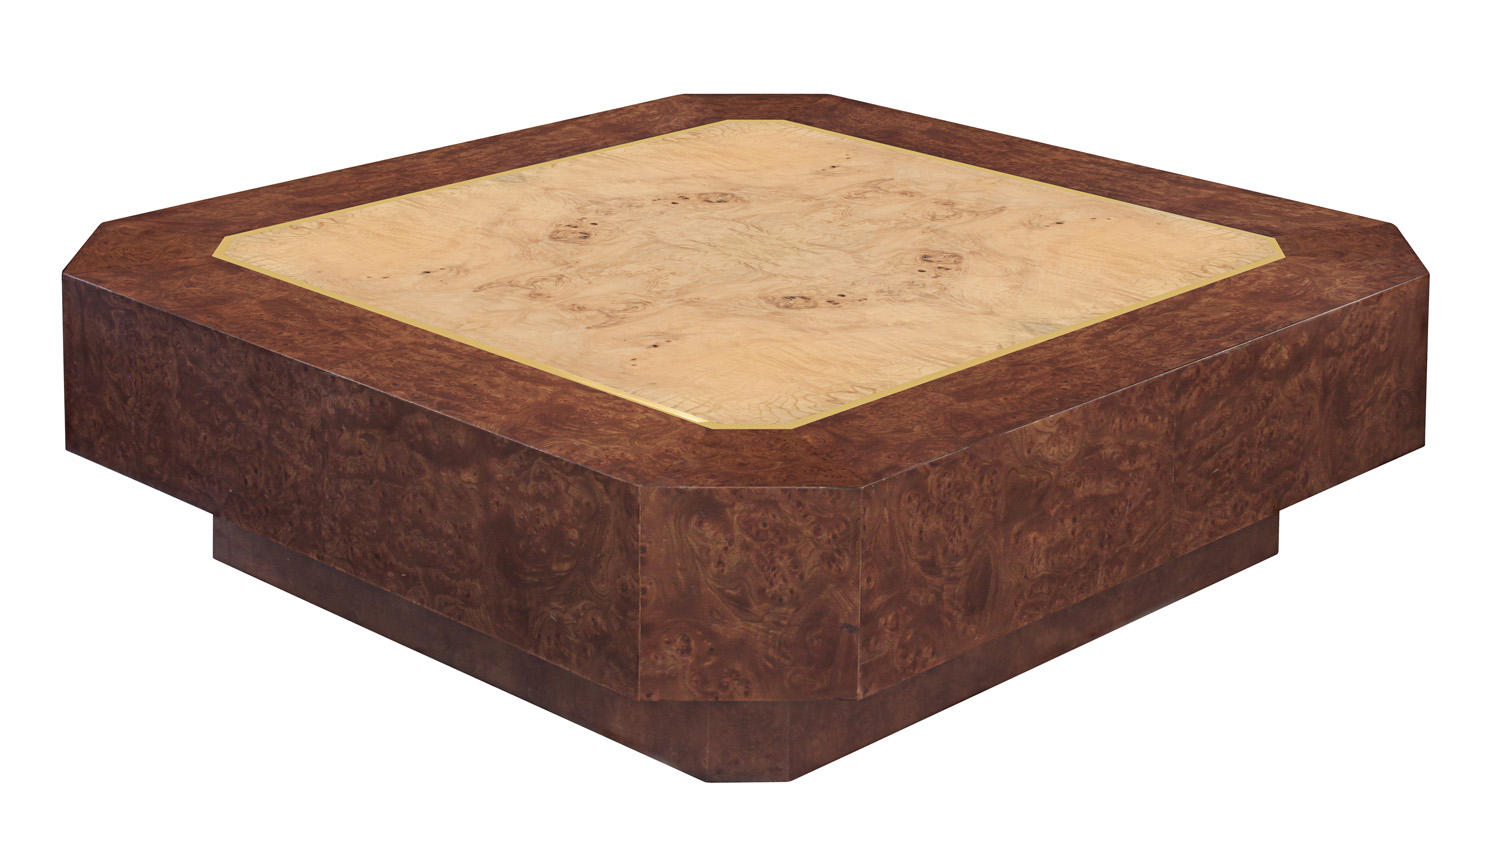 Springer 250 sqr burl+brass inlays coffeetable398 hires.jpg